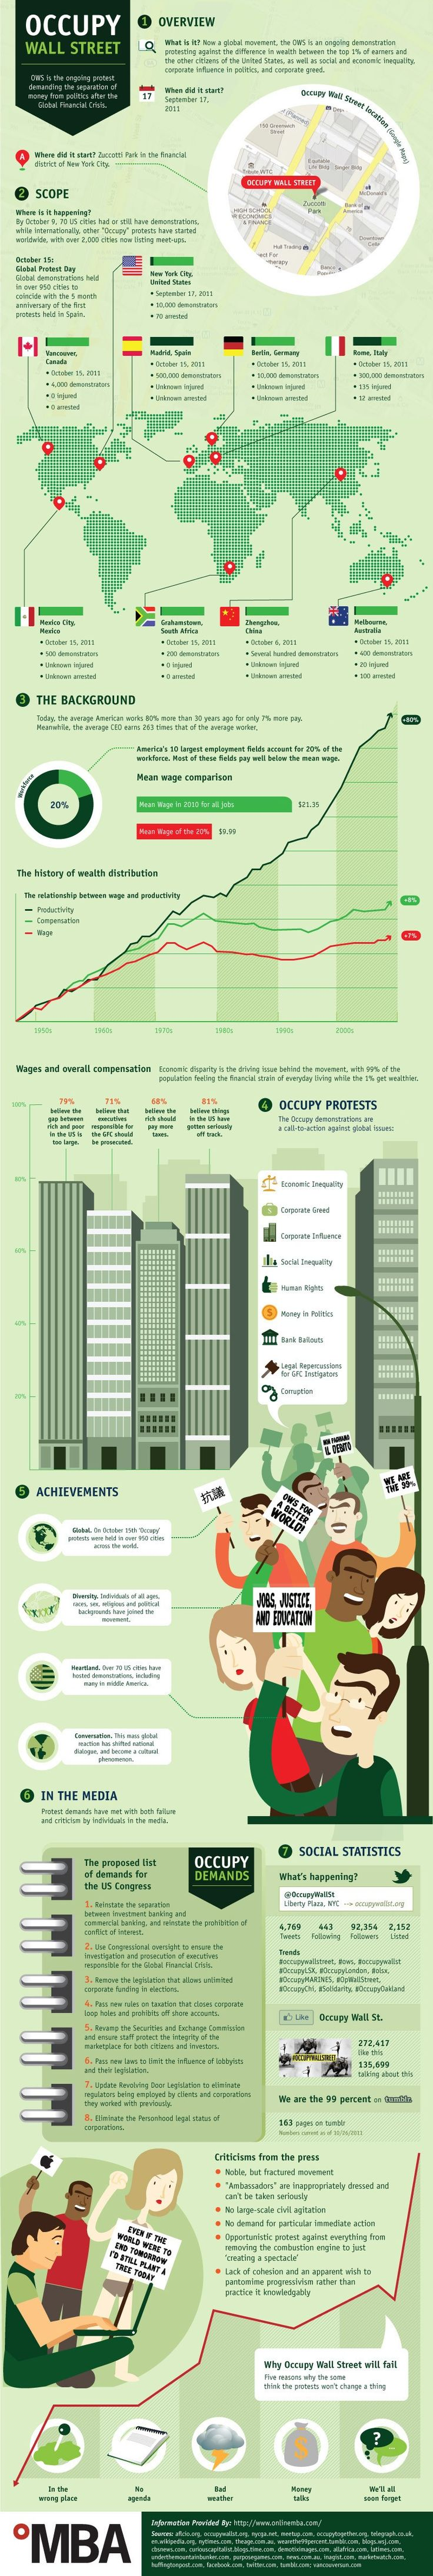 Divorce Letter Template Free%0A The Occupy Wall Street Protest  Infographic